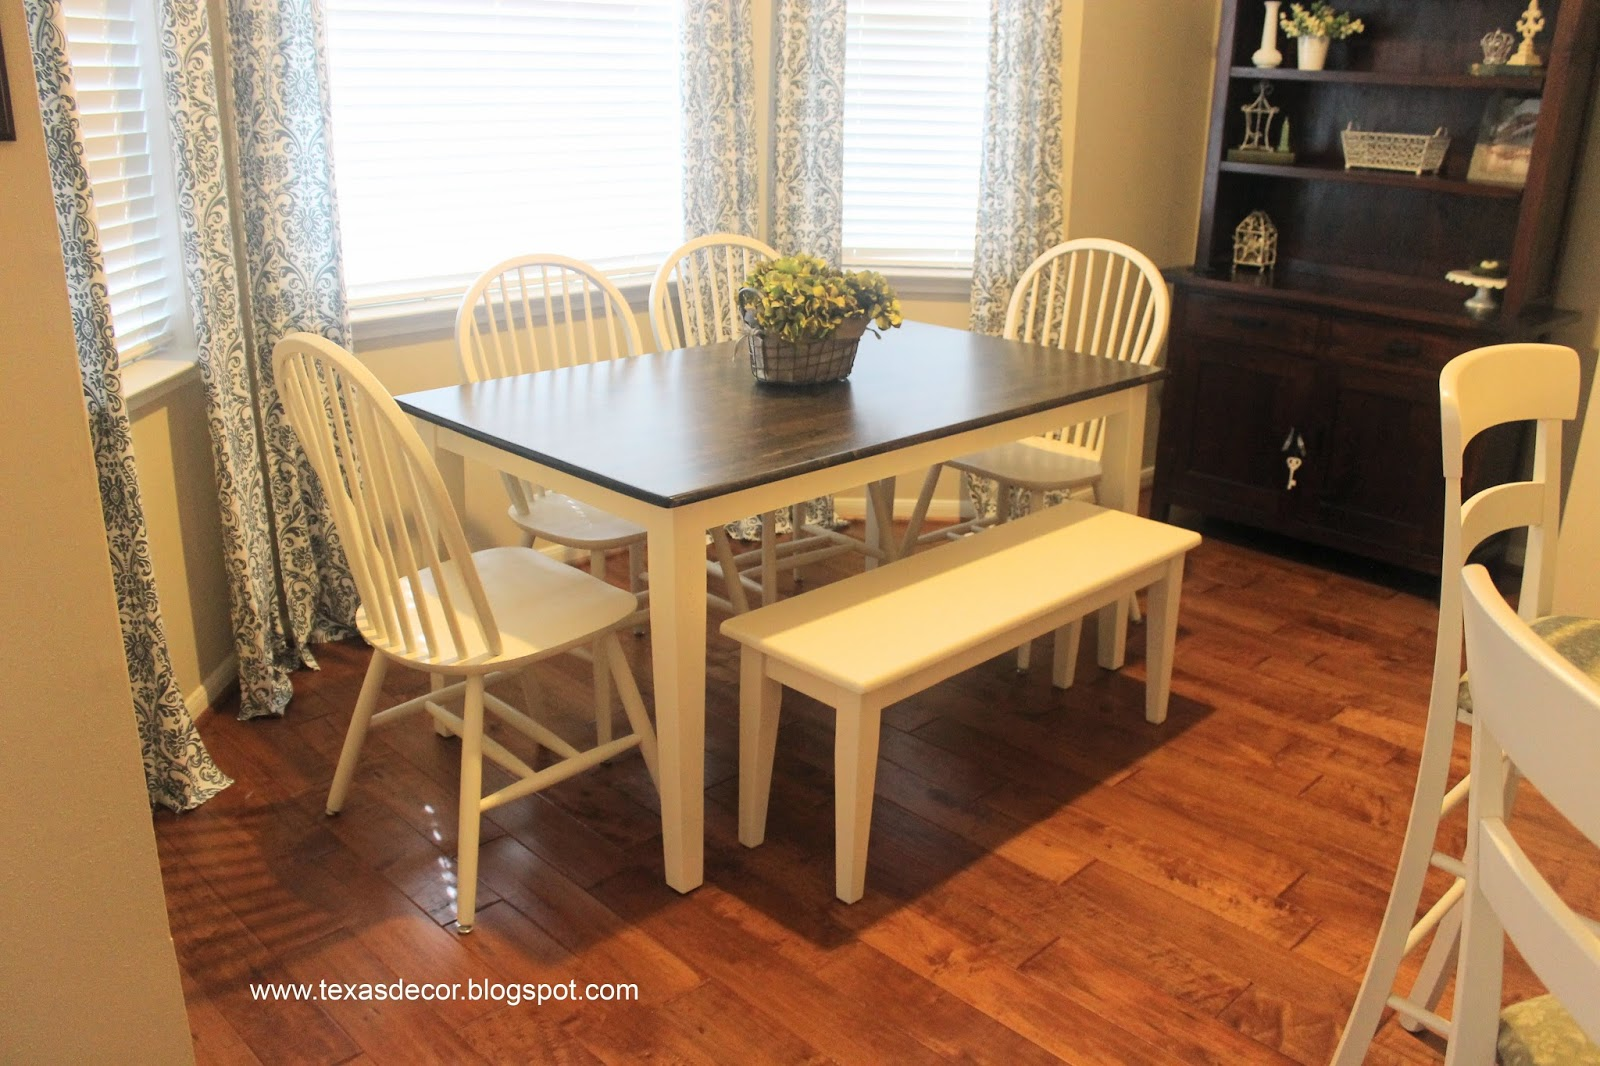 Kitchen Table Top : Texas decor painted and stained kitchen table a tutorial